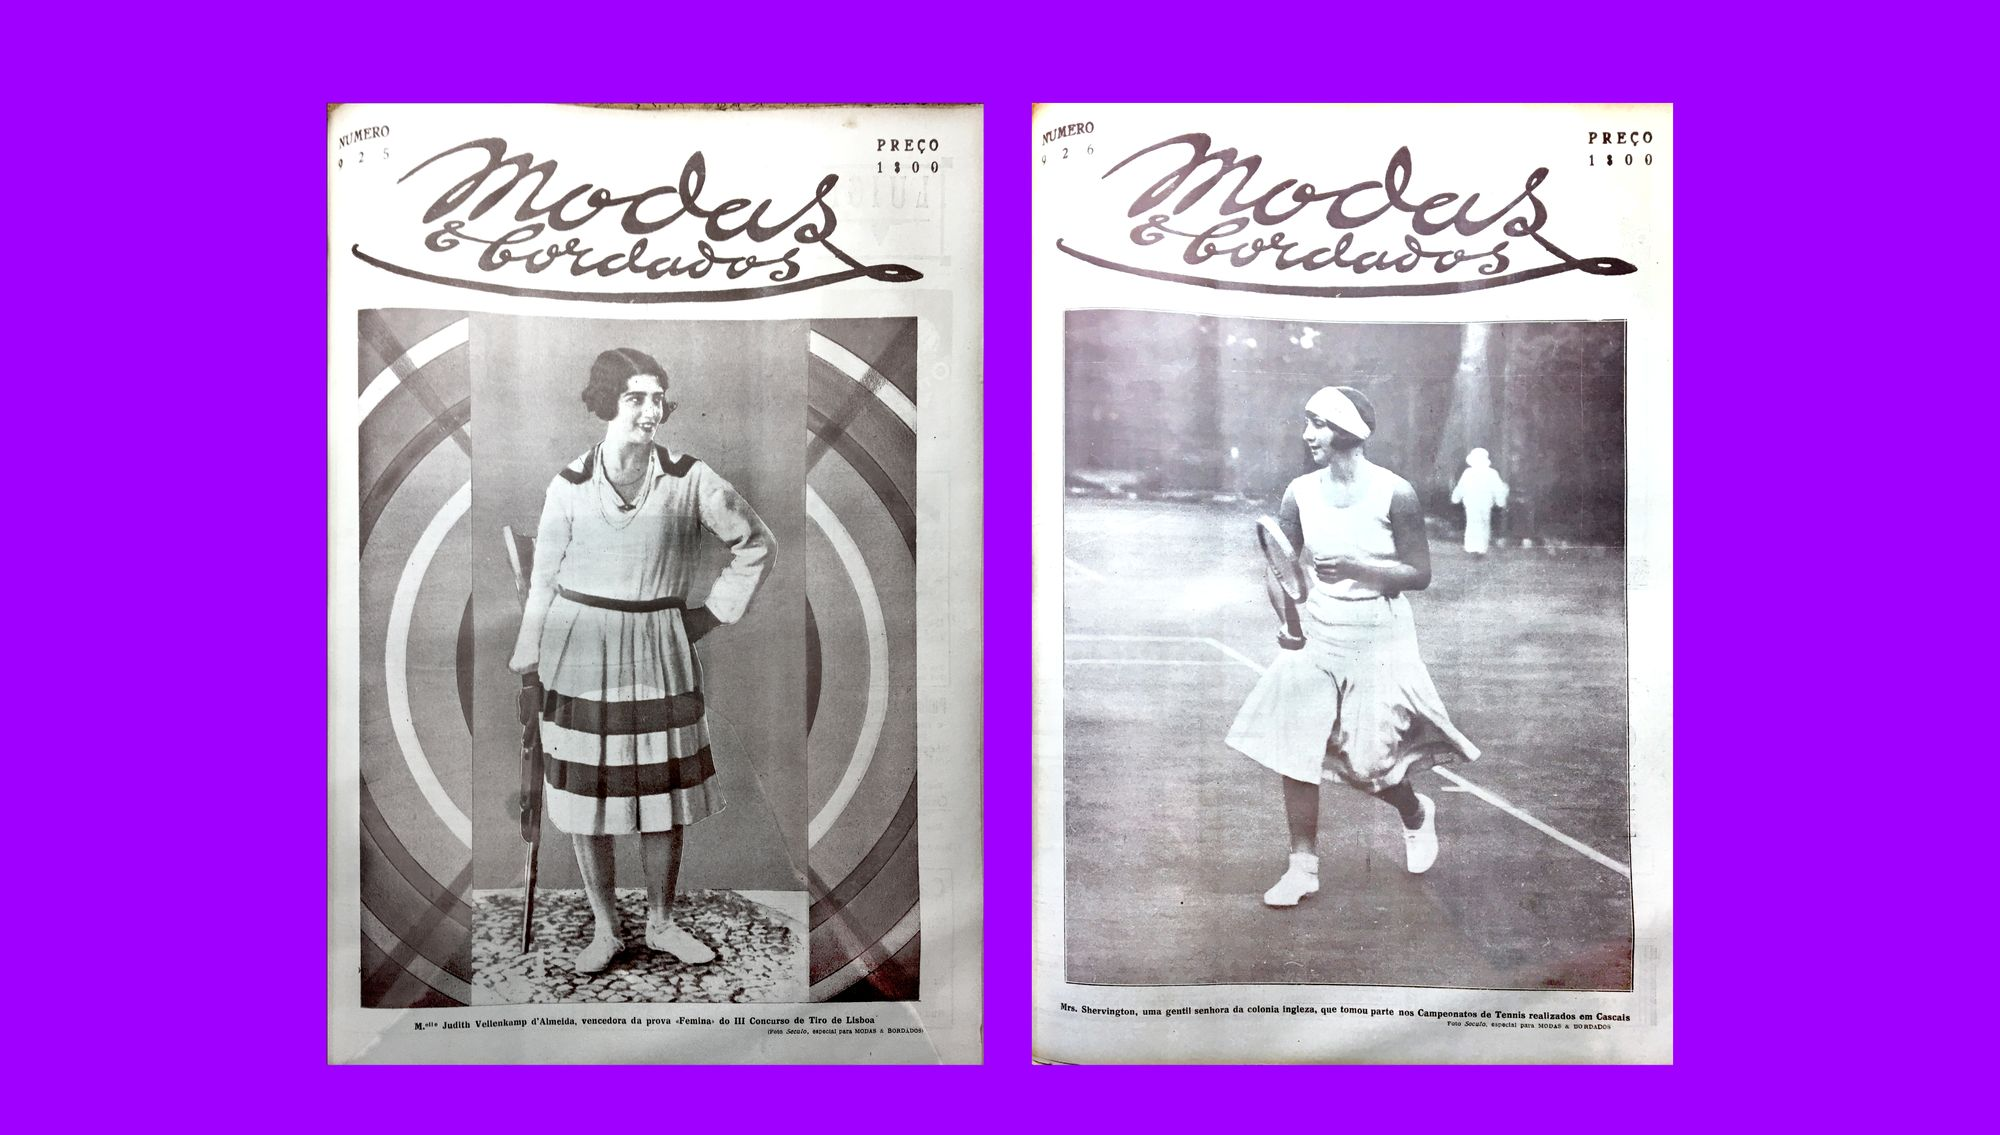 Two covers depicting women engaged in sports. On the left, the cover from October 16, 1929 shows Judith Vellenkamp d'Almeida, the winner of the Lisbon female target shooting competition; on the right, the cover from October 23, 1929 shows Ms. Shervington playing tennis in the championship held outside Lisbon.